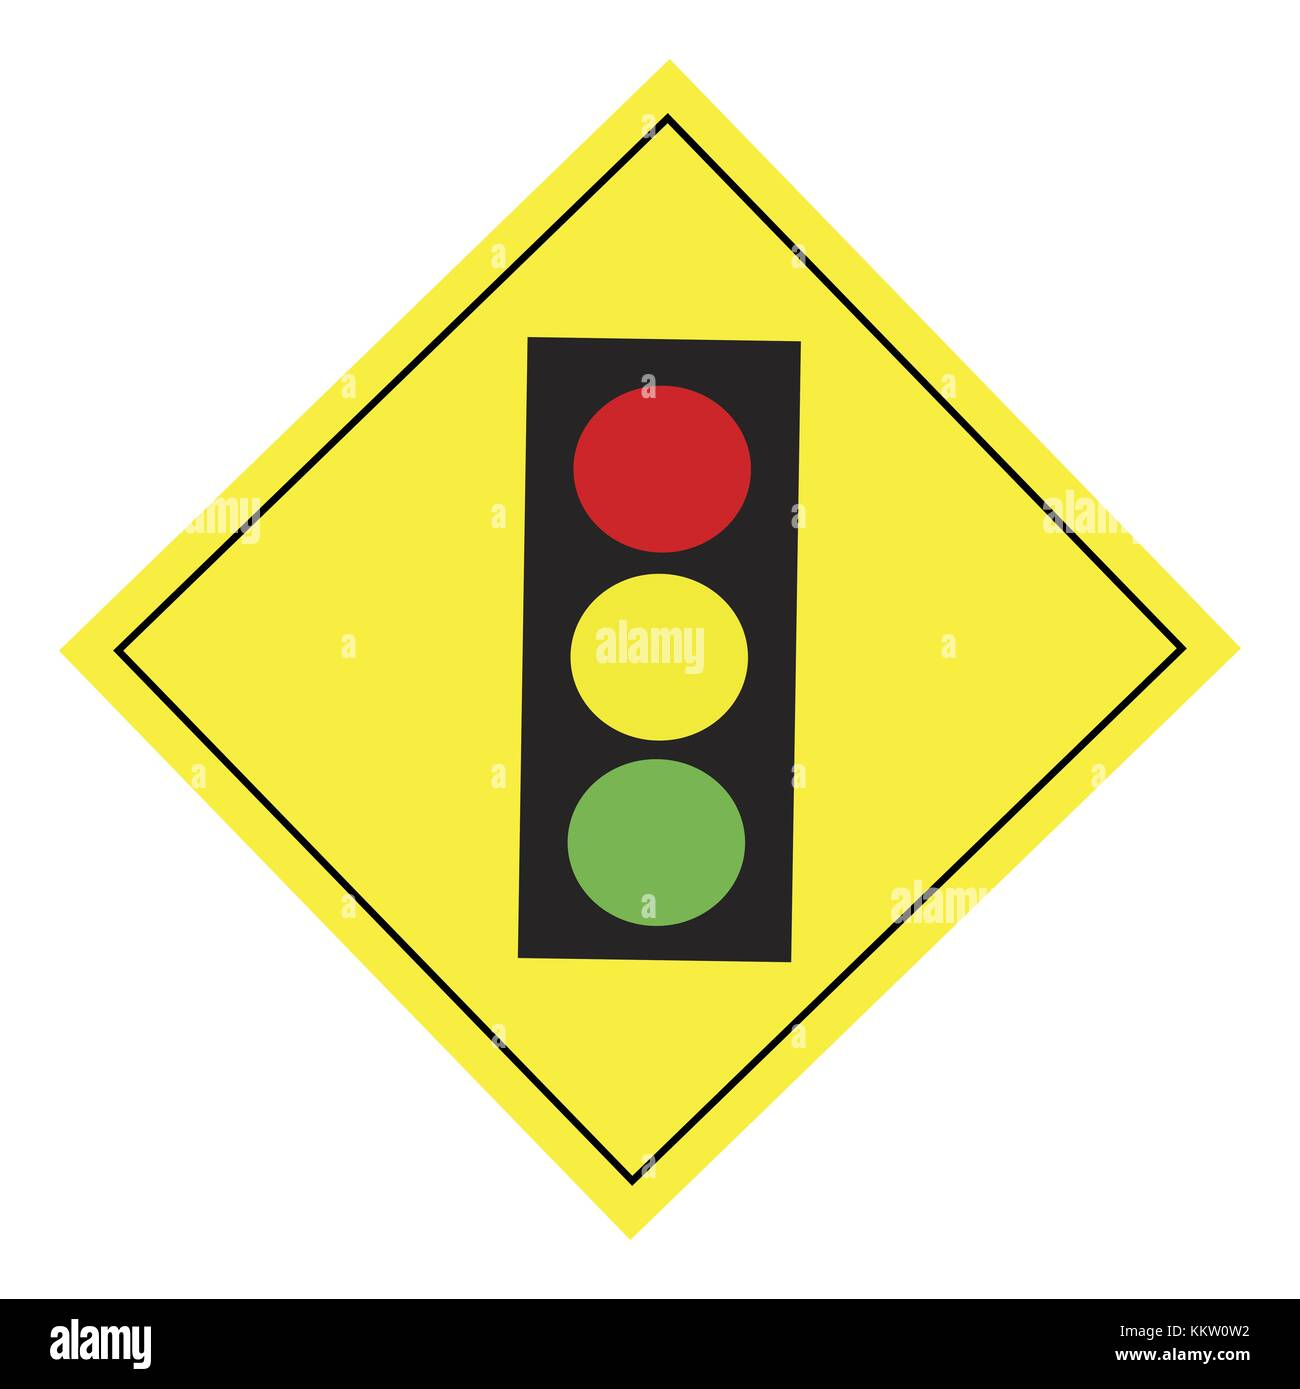 Road Signs traffic light - Stock Image